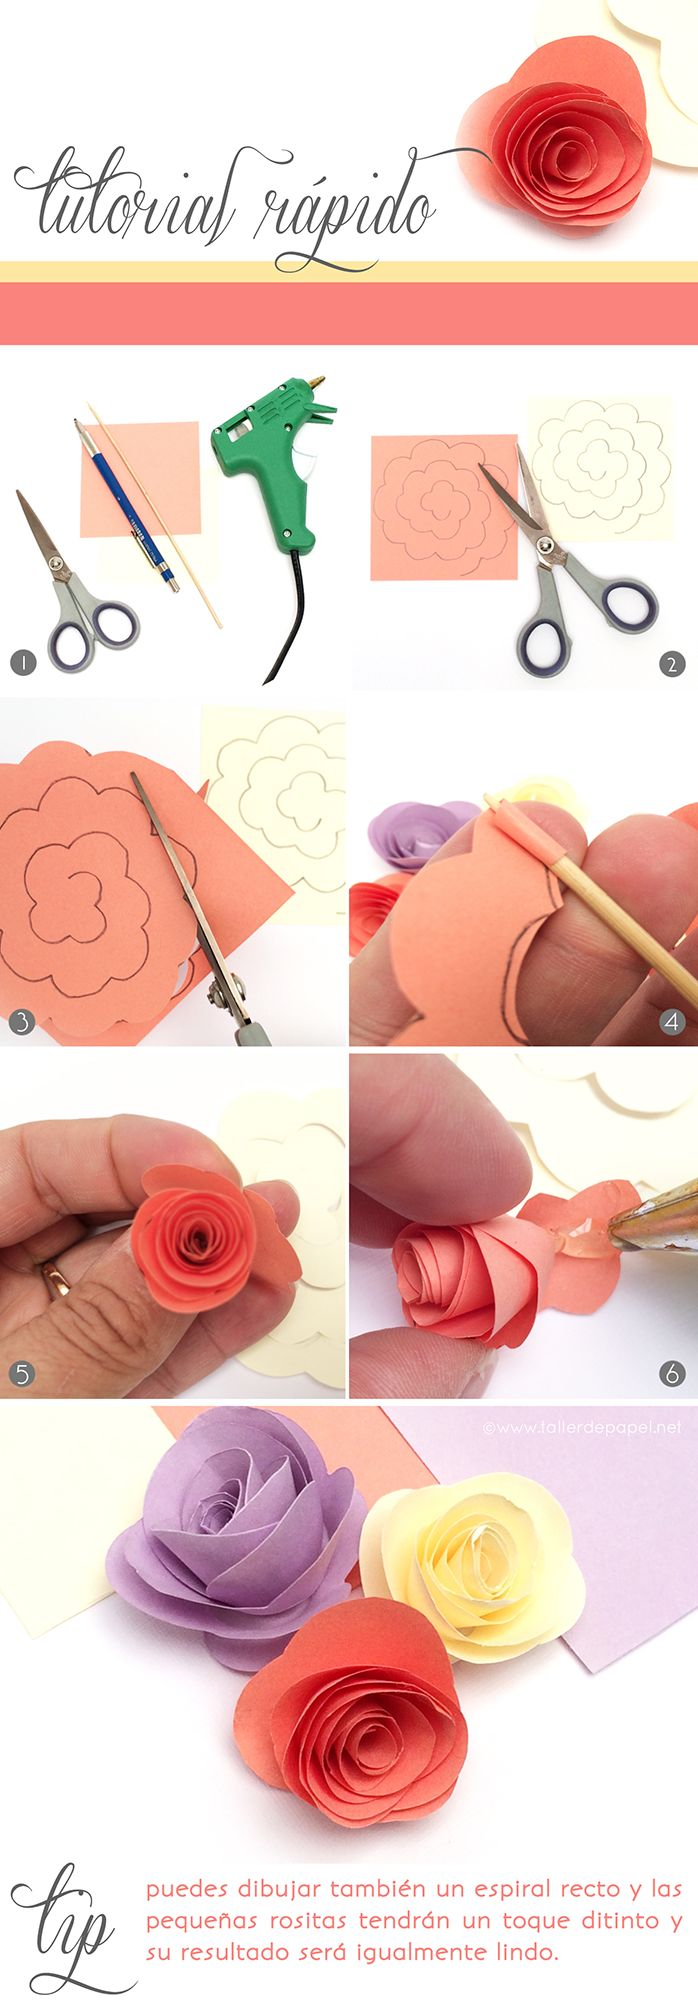 DIY Tutorial Rápido : Haciendo mini rositas de papel!